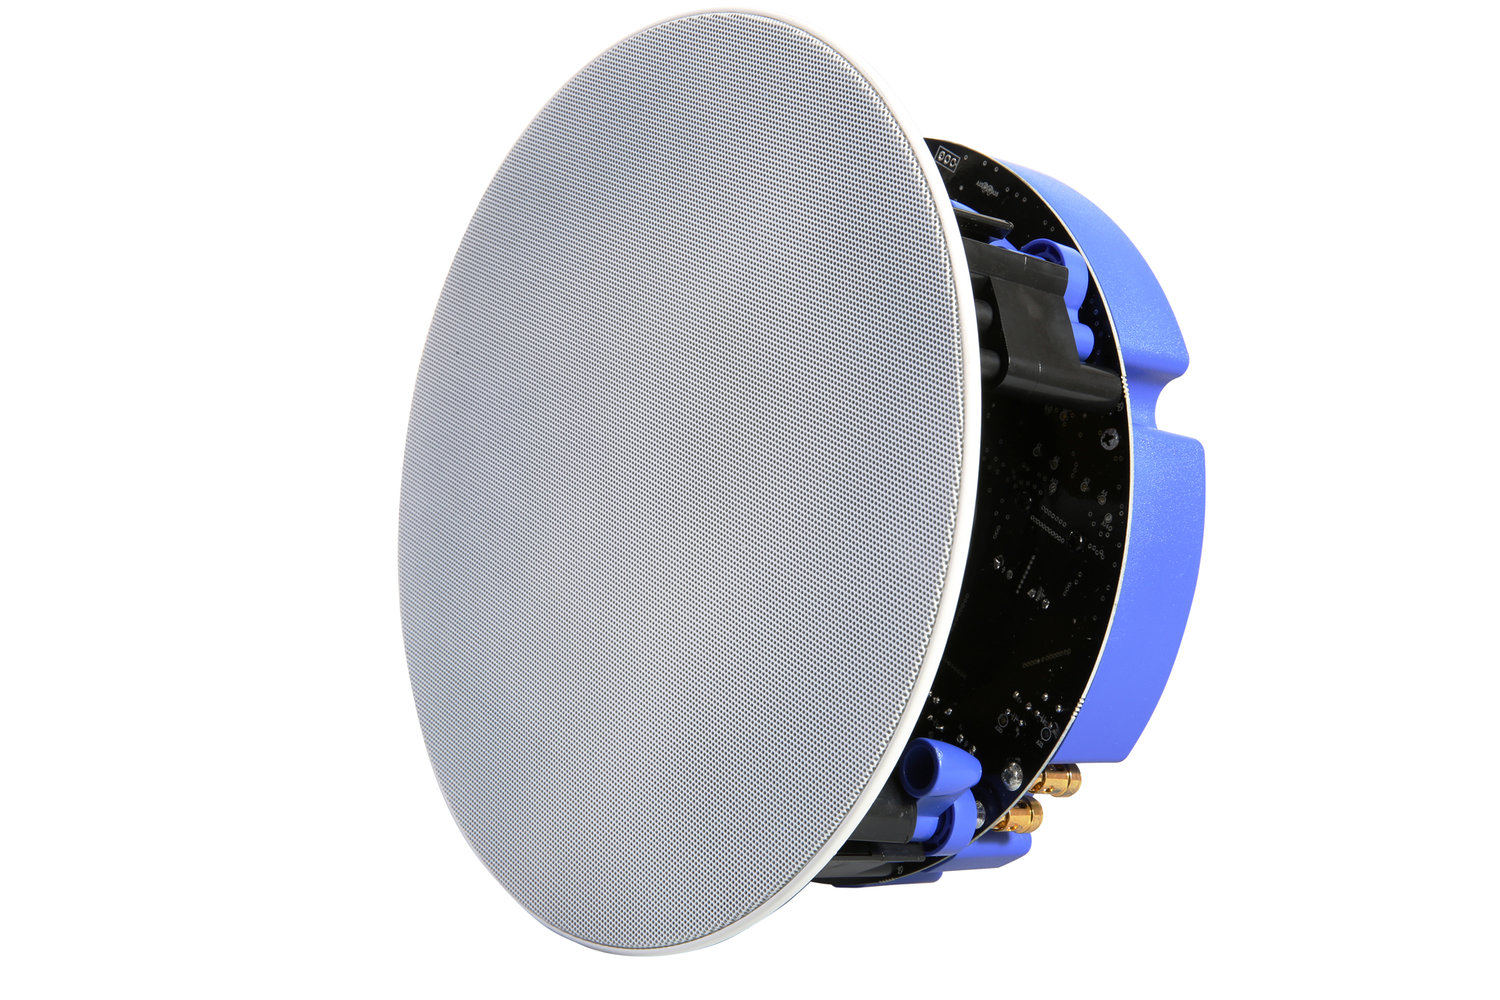 01563_Lithe Audio Bluetooth Ceiling speaker_Cutout.jpg